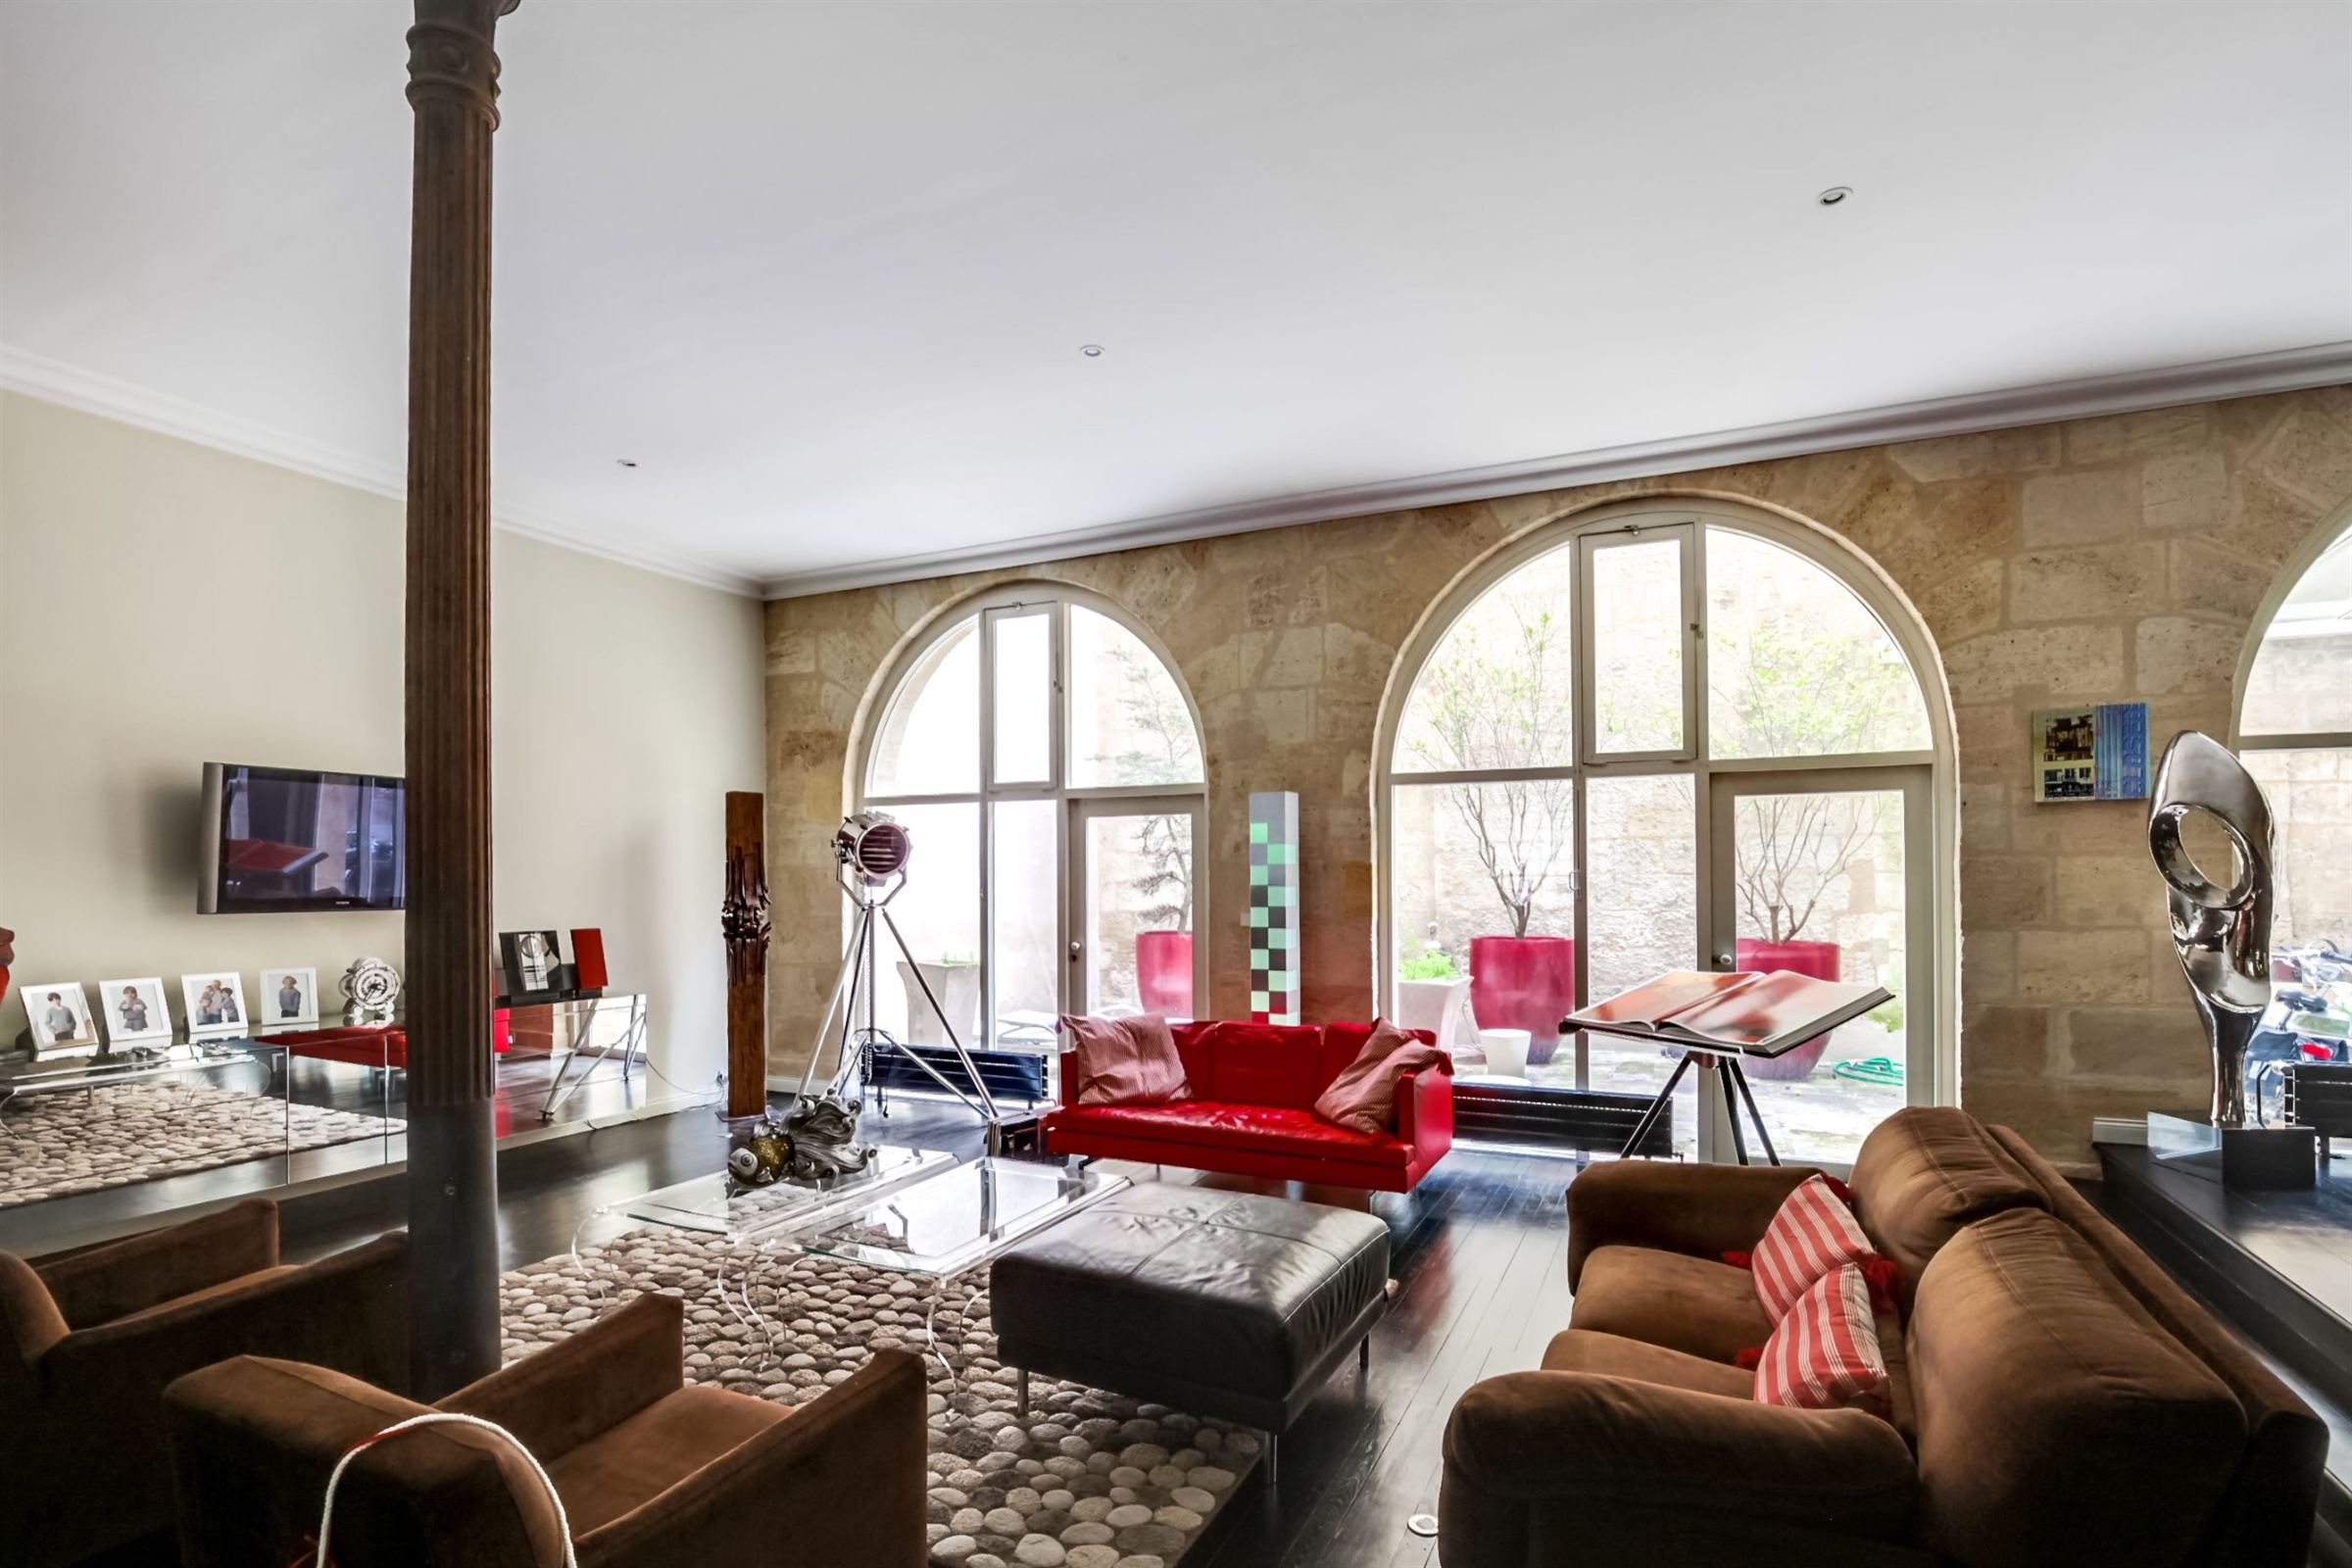 sales property at DOWNTOWN BORDEAUX - VAST 4 BEDROOM DUPLEX WITH 2 TERRACES AND PARKING SPACES